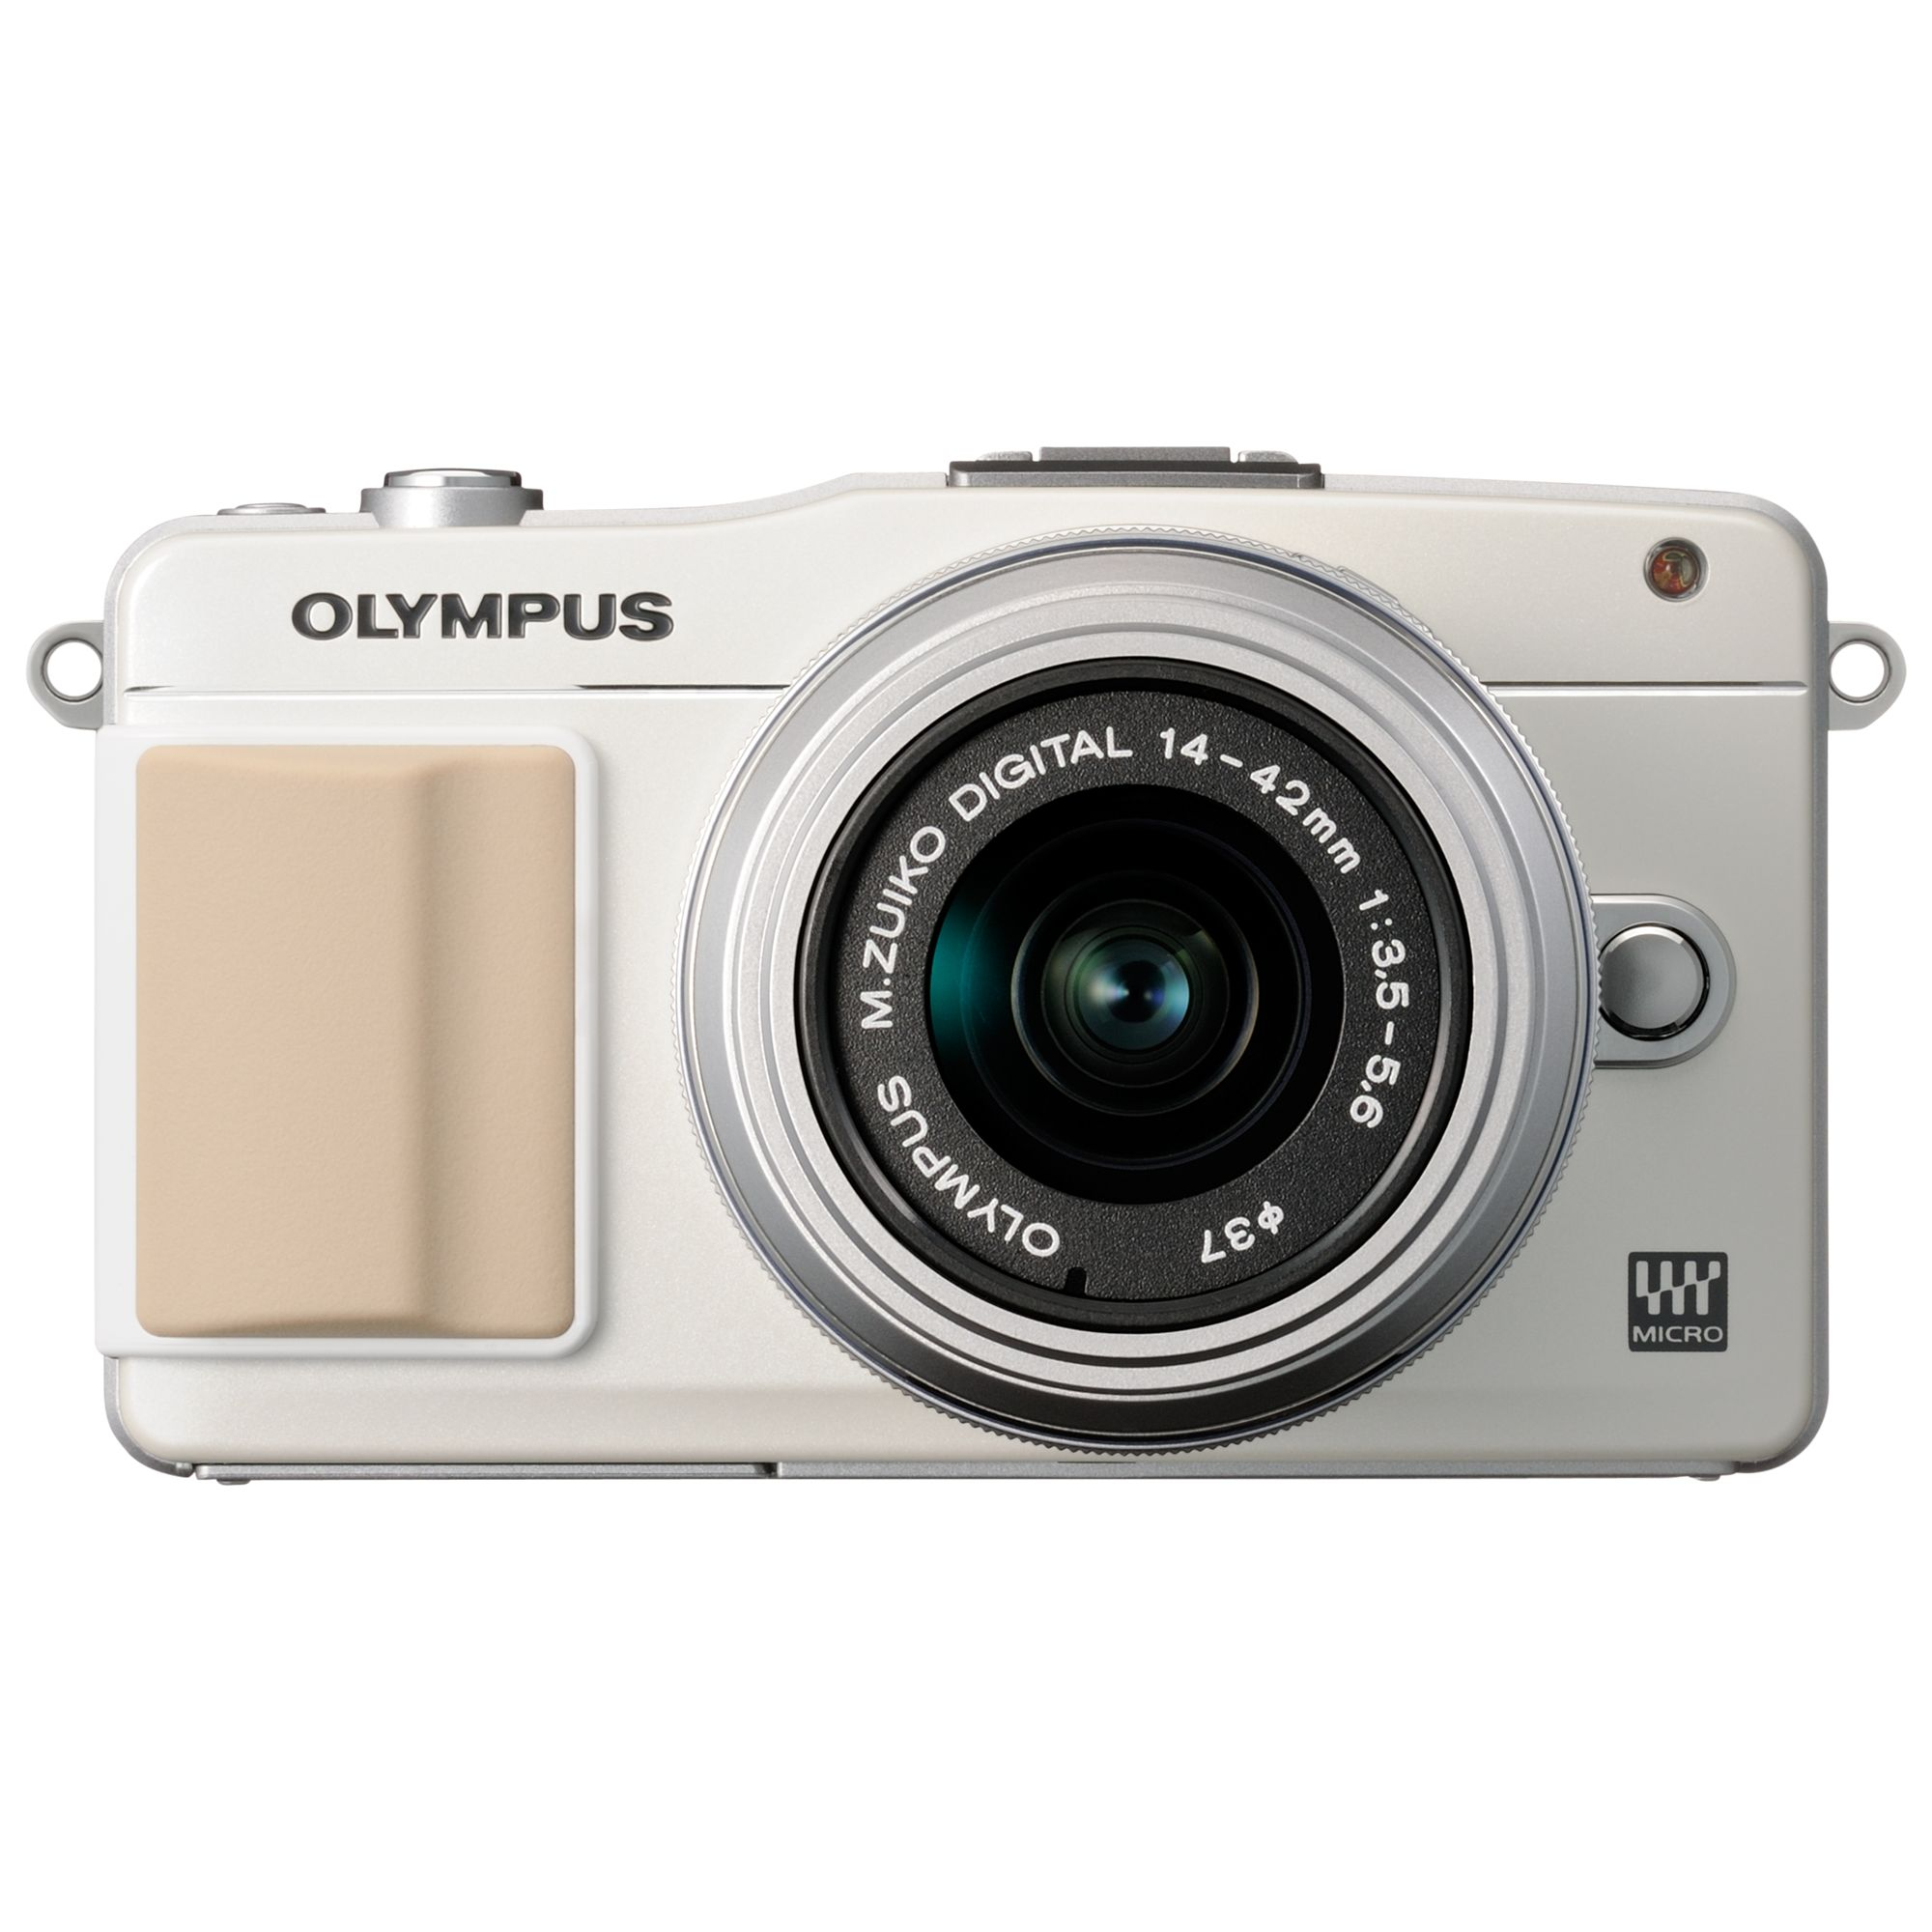 Olympus E-PM2 Compact System Camera with 14-42 mm Telephoto Zoom Lens